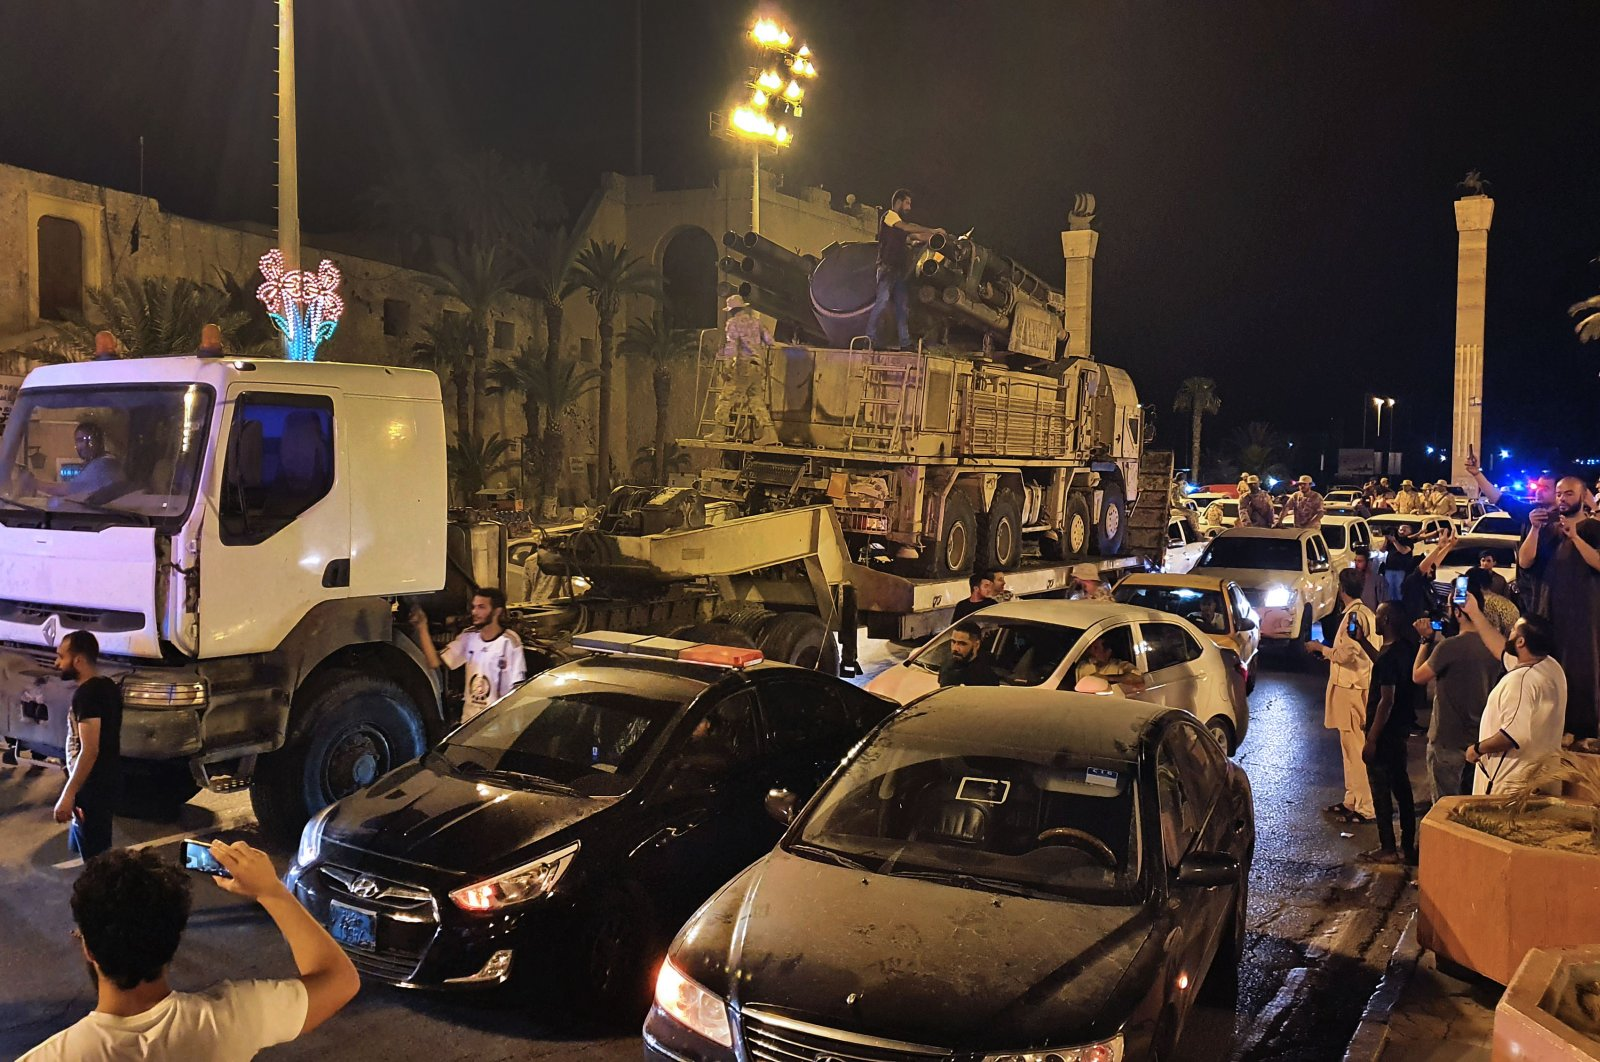 Forces loyal to Libya's U.N.-recognized Government of National Accord (GNA) parade a Pantsir air defense system truck in the capital Tripoli, Libya, May 20, 2020. (AFP Photo)